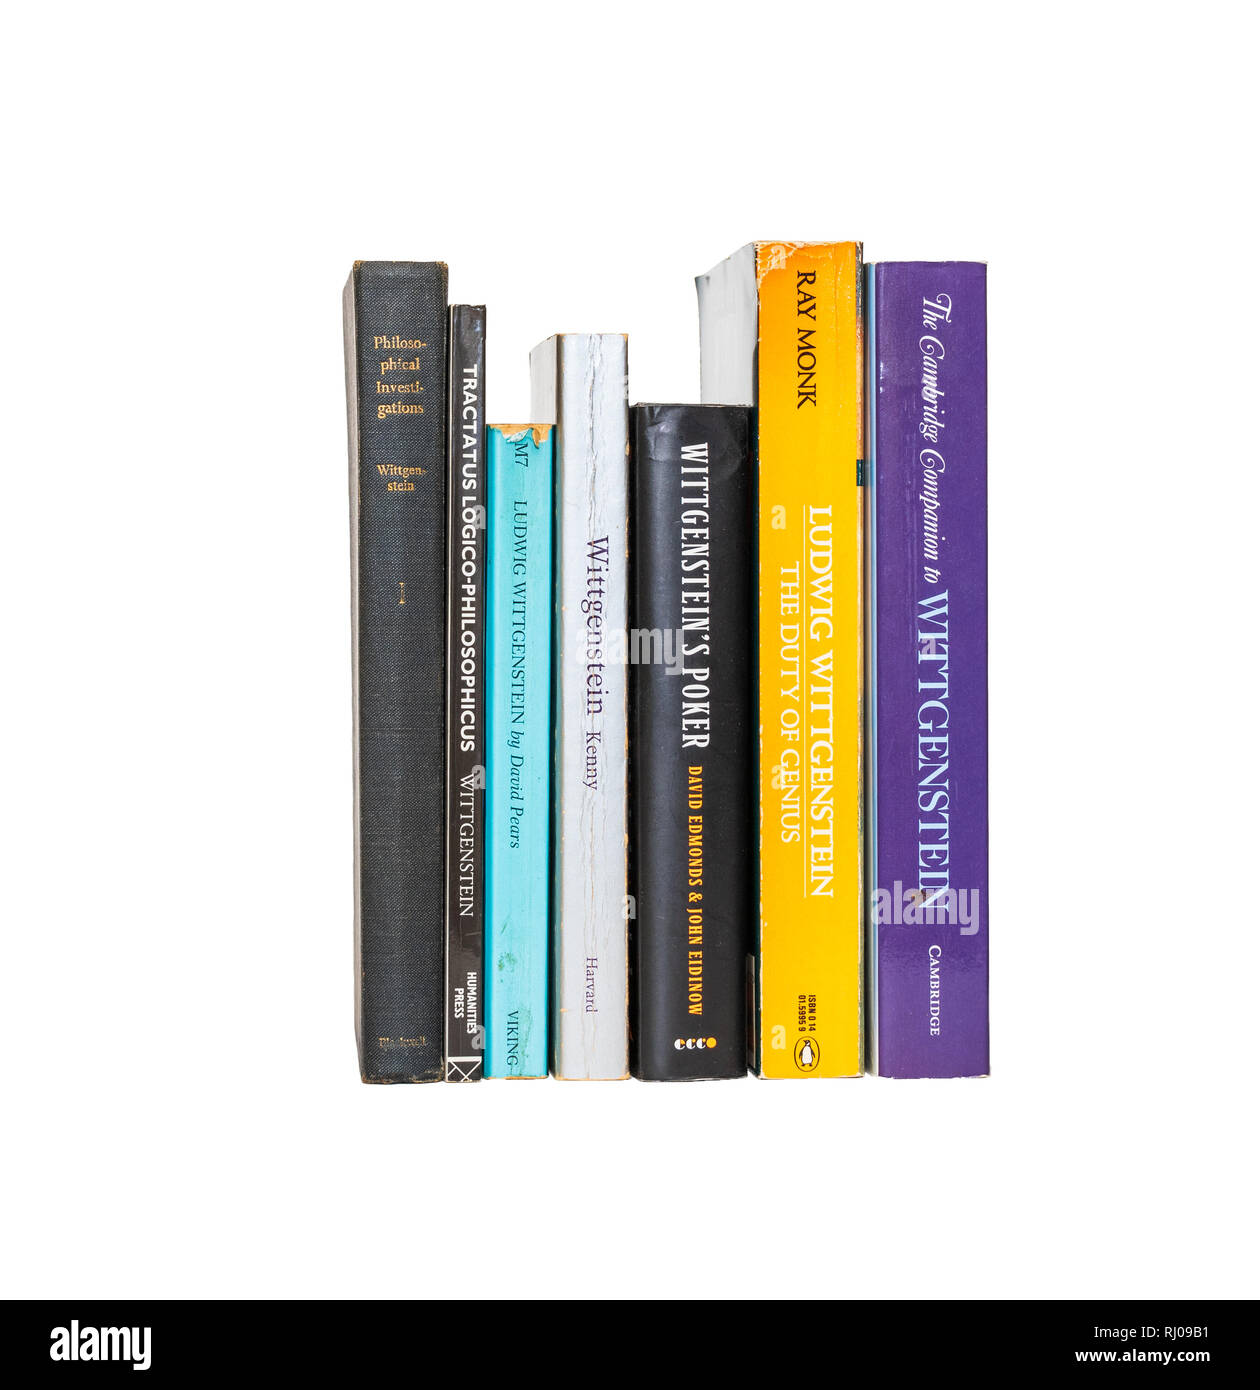 Book image: Collection of books by and about Ludwig Wittgenstein, isolated on pure white background.  Spines showing. - Stock Image